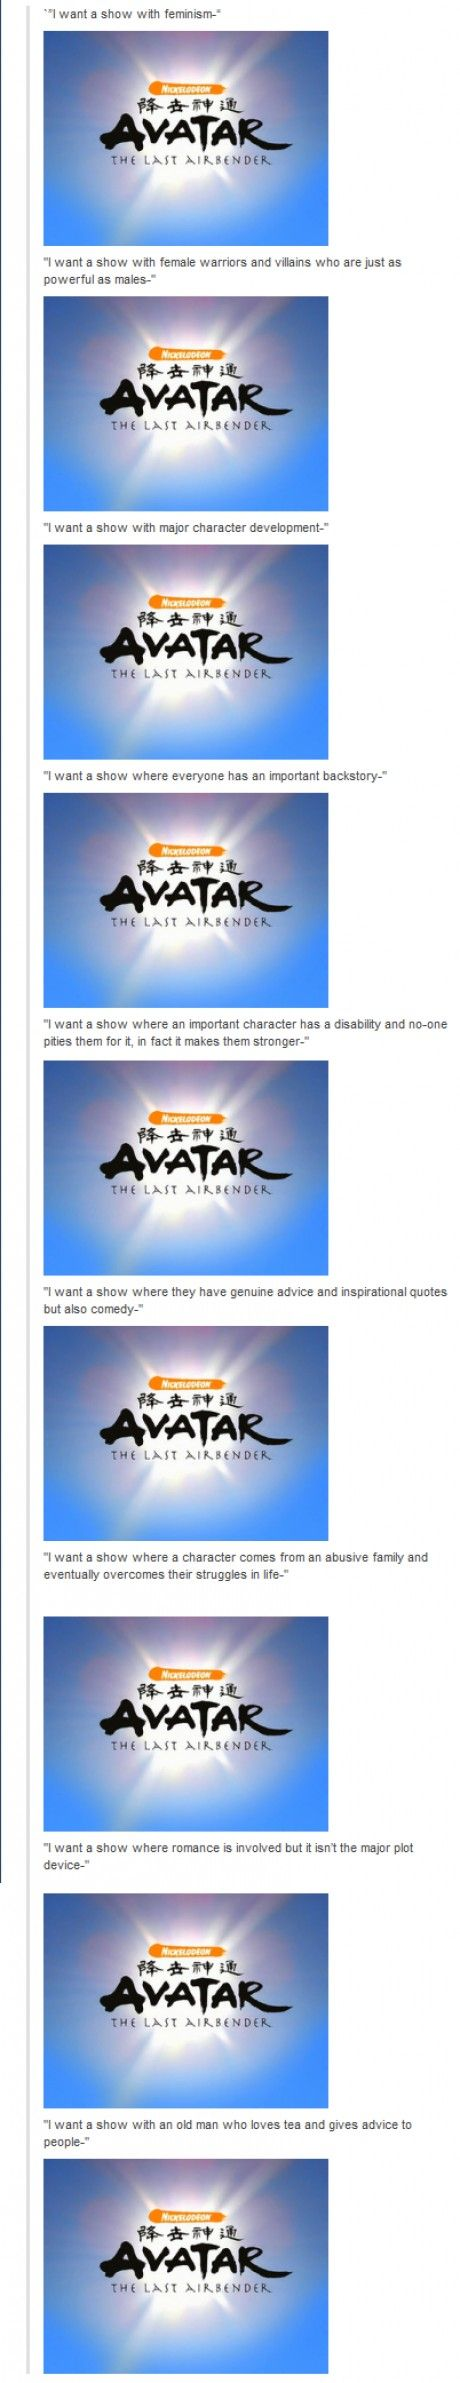 Avatar just has everything, because it is just the best